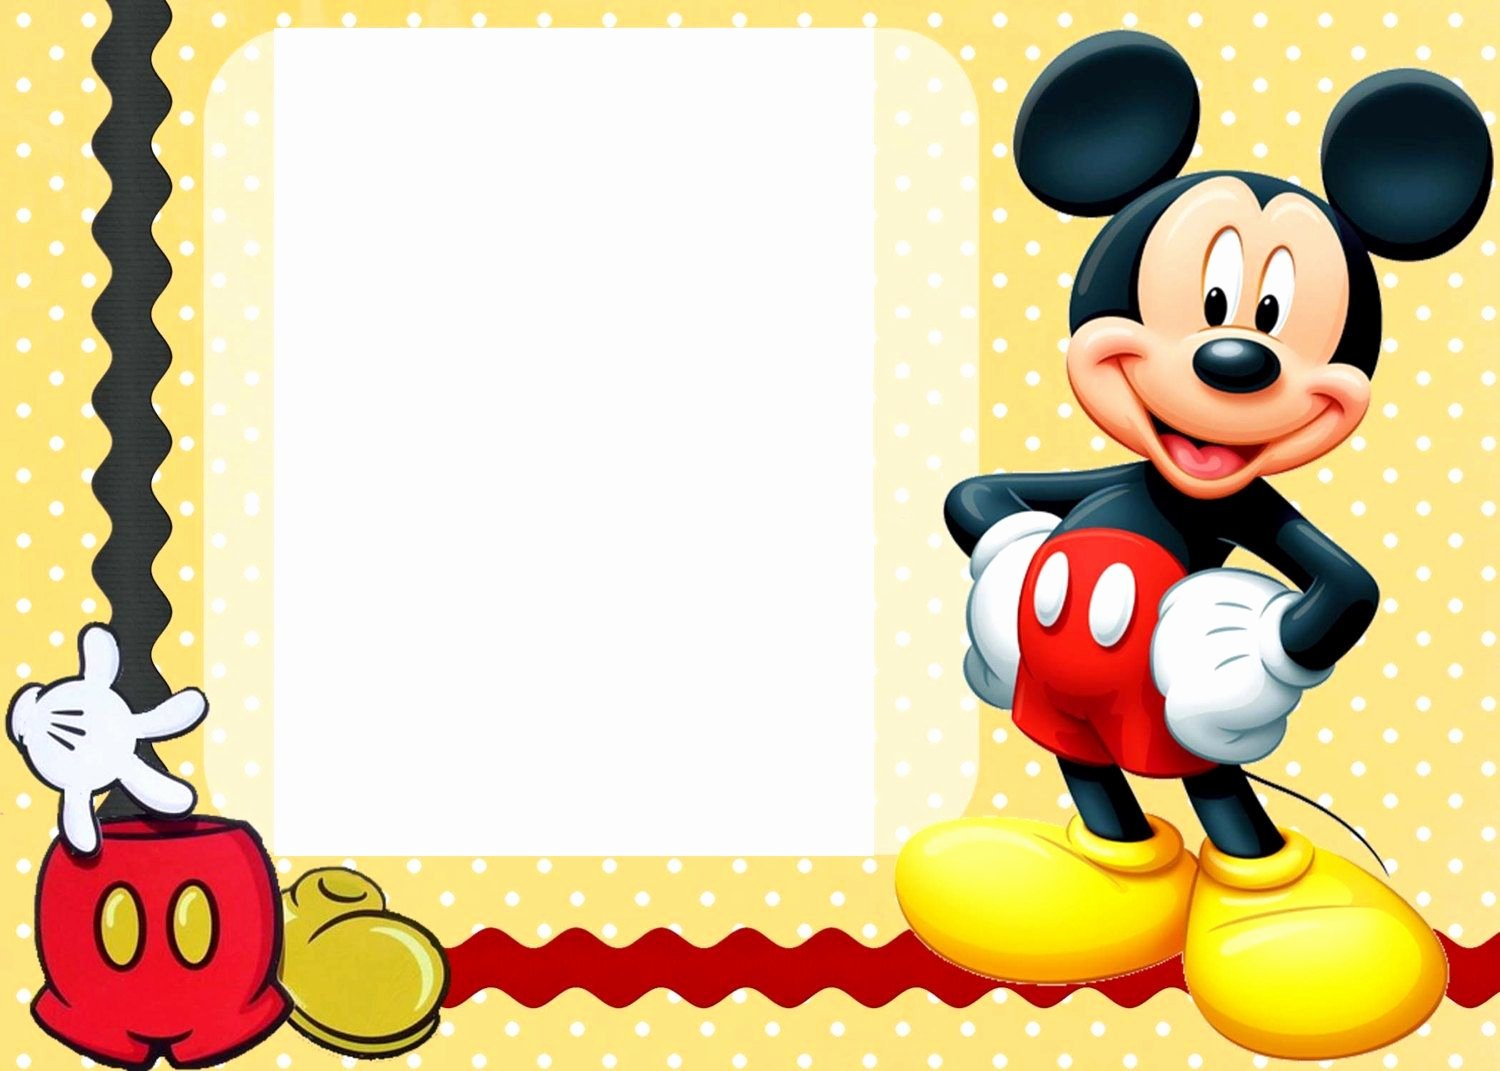 Free Mickey Mouse Template Best Of 25 Incredible Mickey Mouse Birthday Invitations